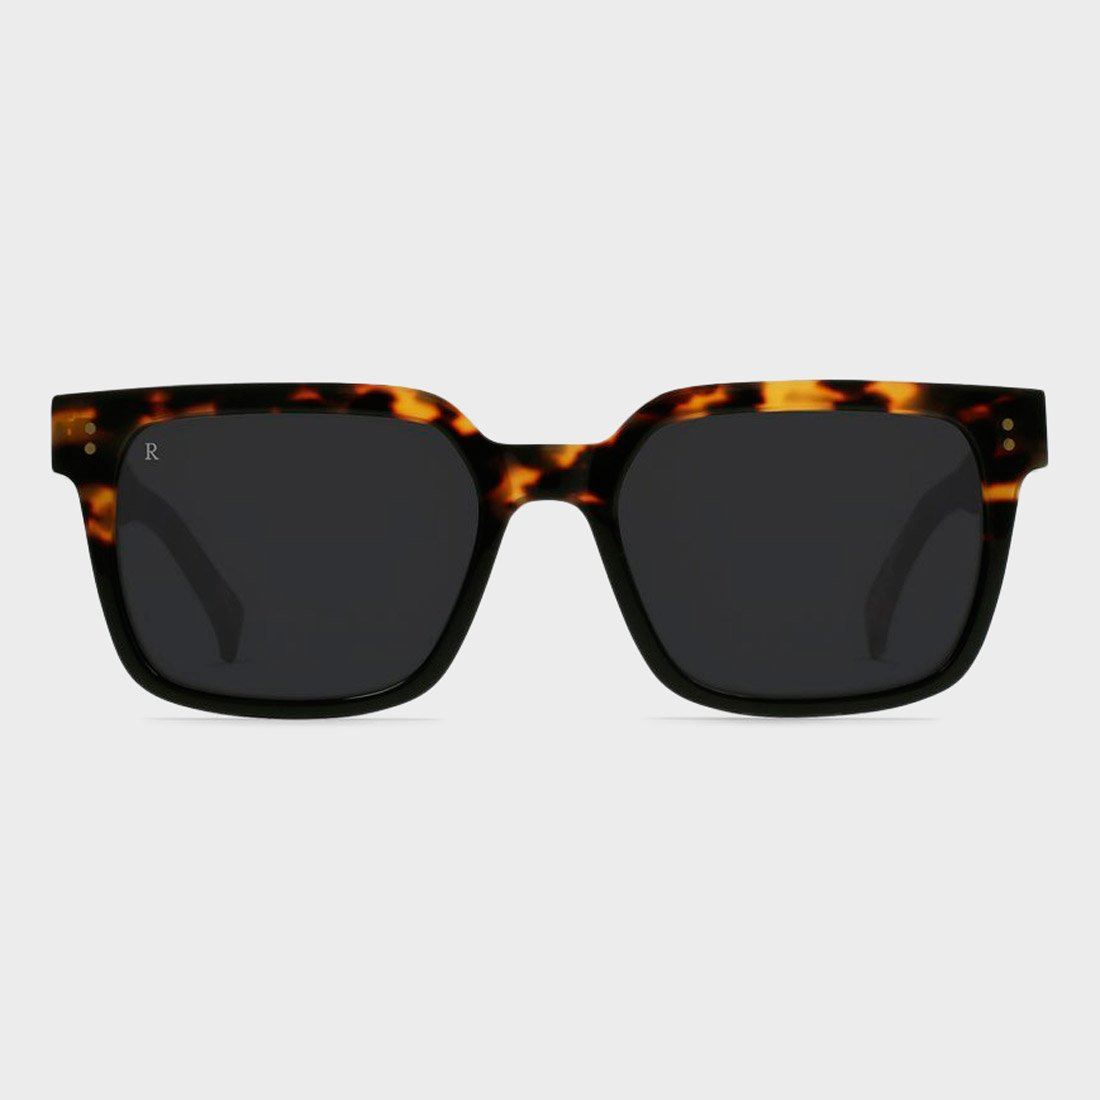 Raen West 55 Sunglasses Tamarin / Dark Smoke